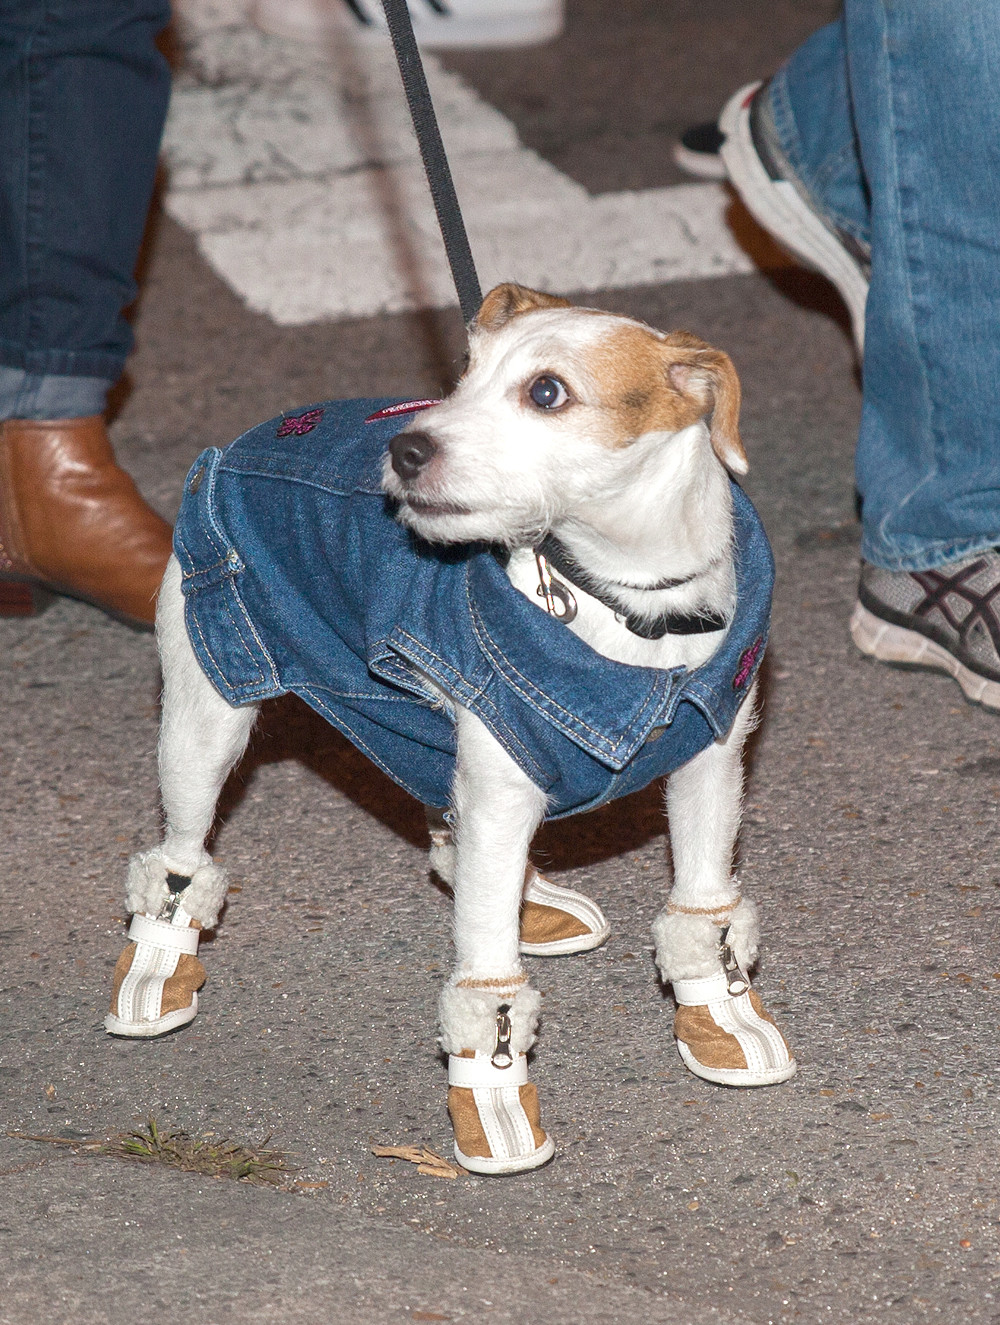 THIS PREPARED POOCH came to the Block Party ready to stay warm and enjoy the night.